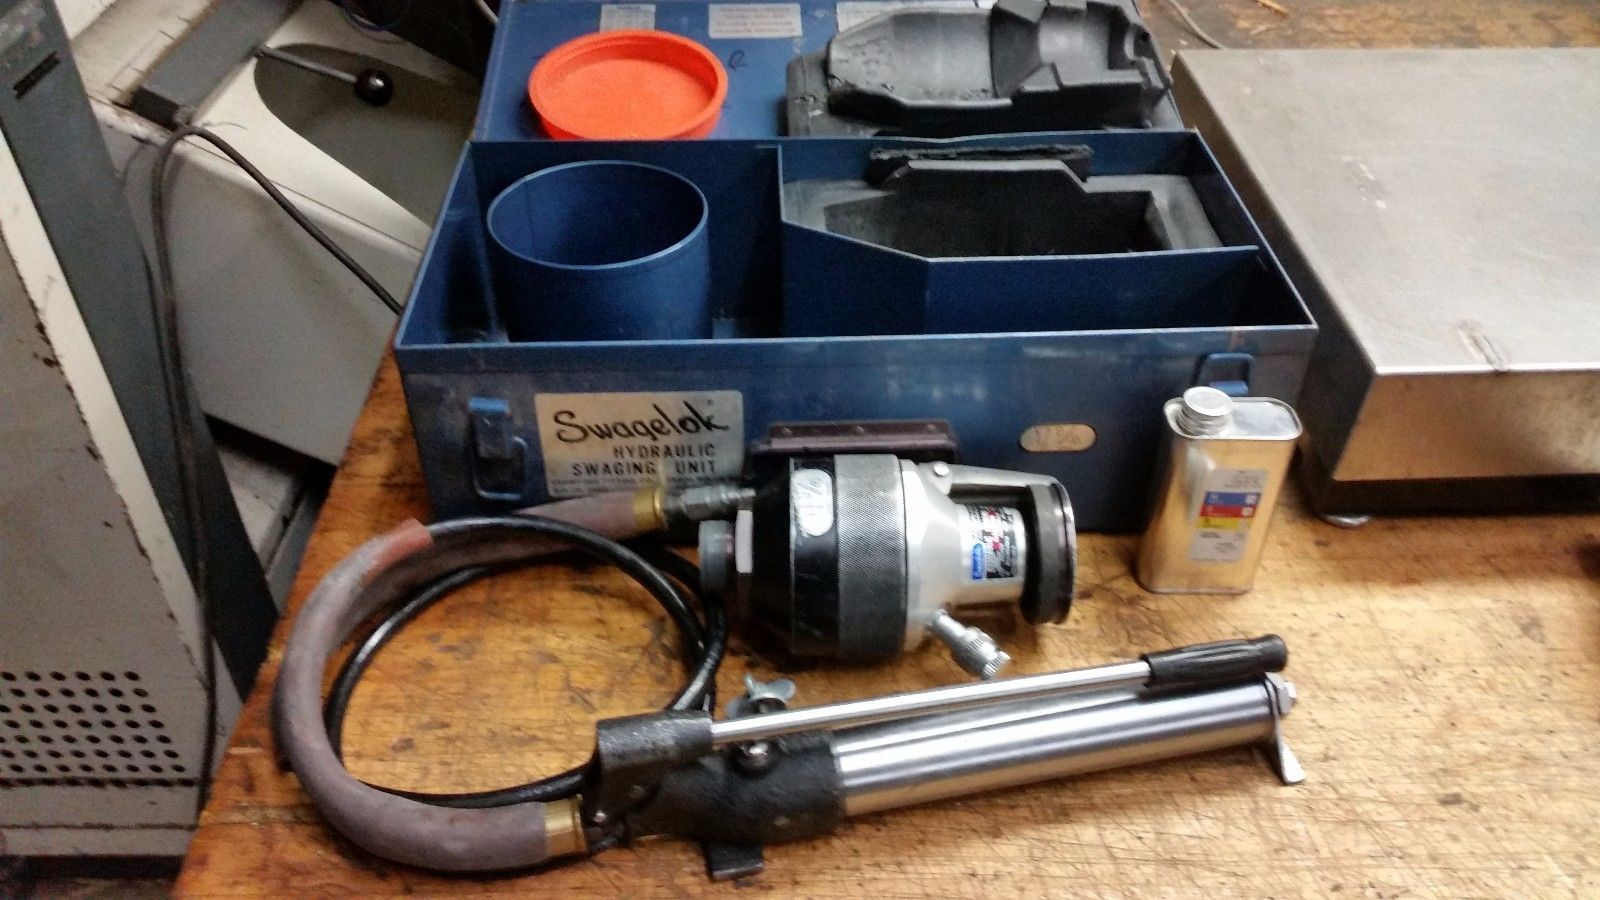 "Swagelok HYDRAULIC TUBE SWAGING TOOL 1-1/4"" 2401 SERIES WITH PUMP"